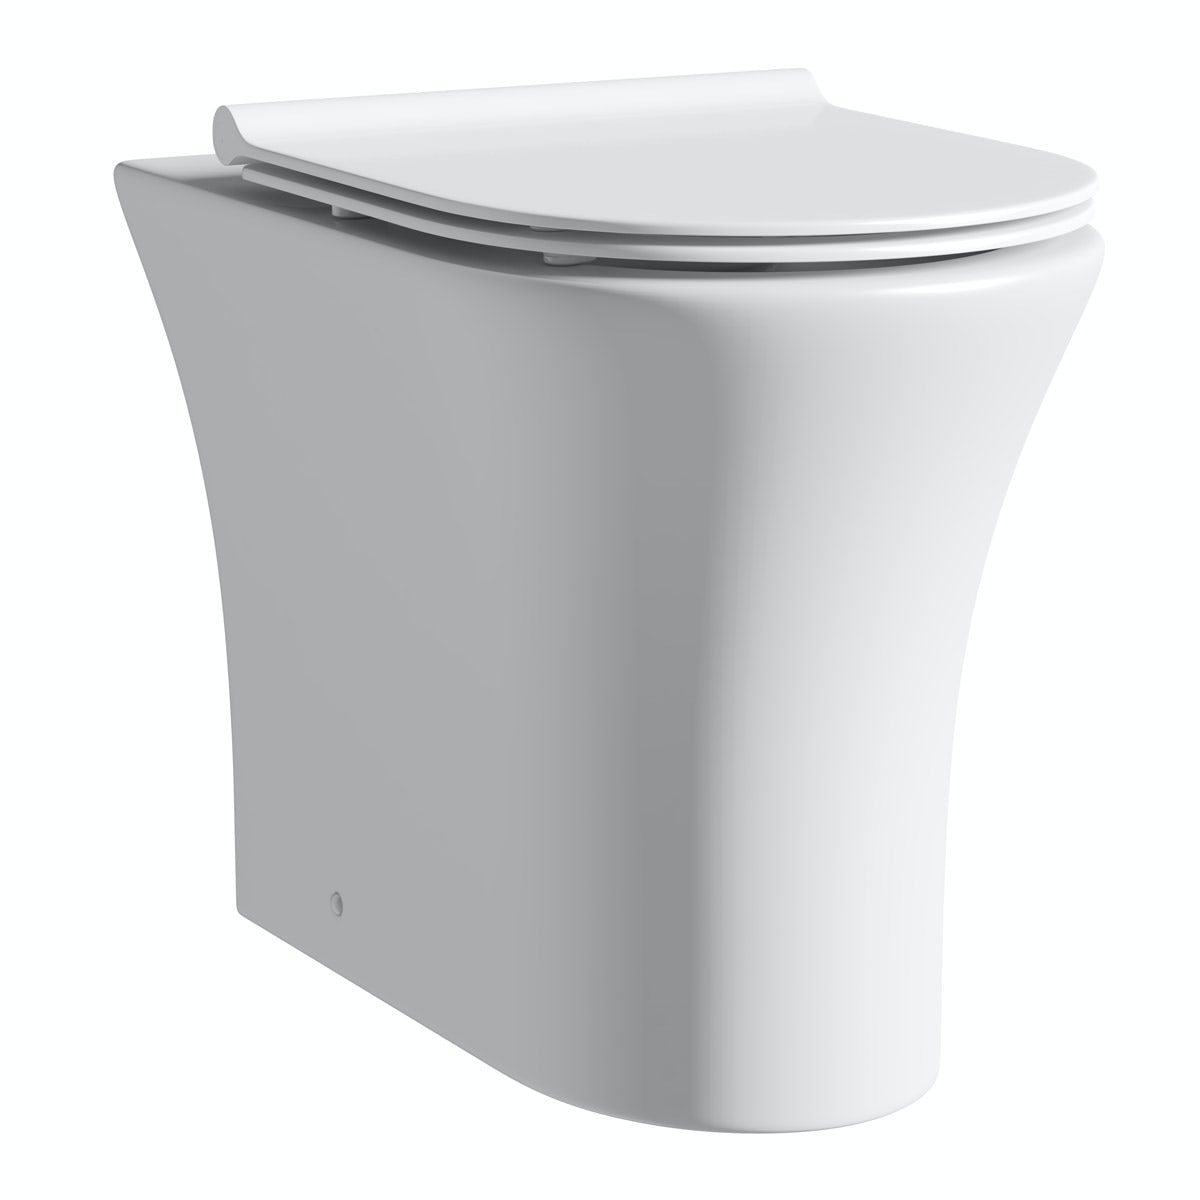 Mode Hardy back to wall toilet inc slimline soft close seat